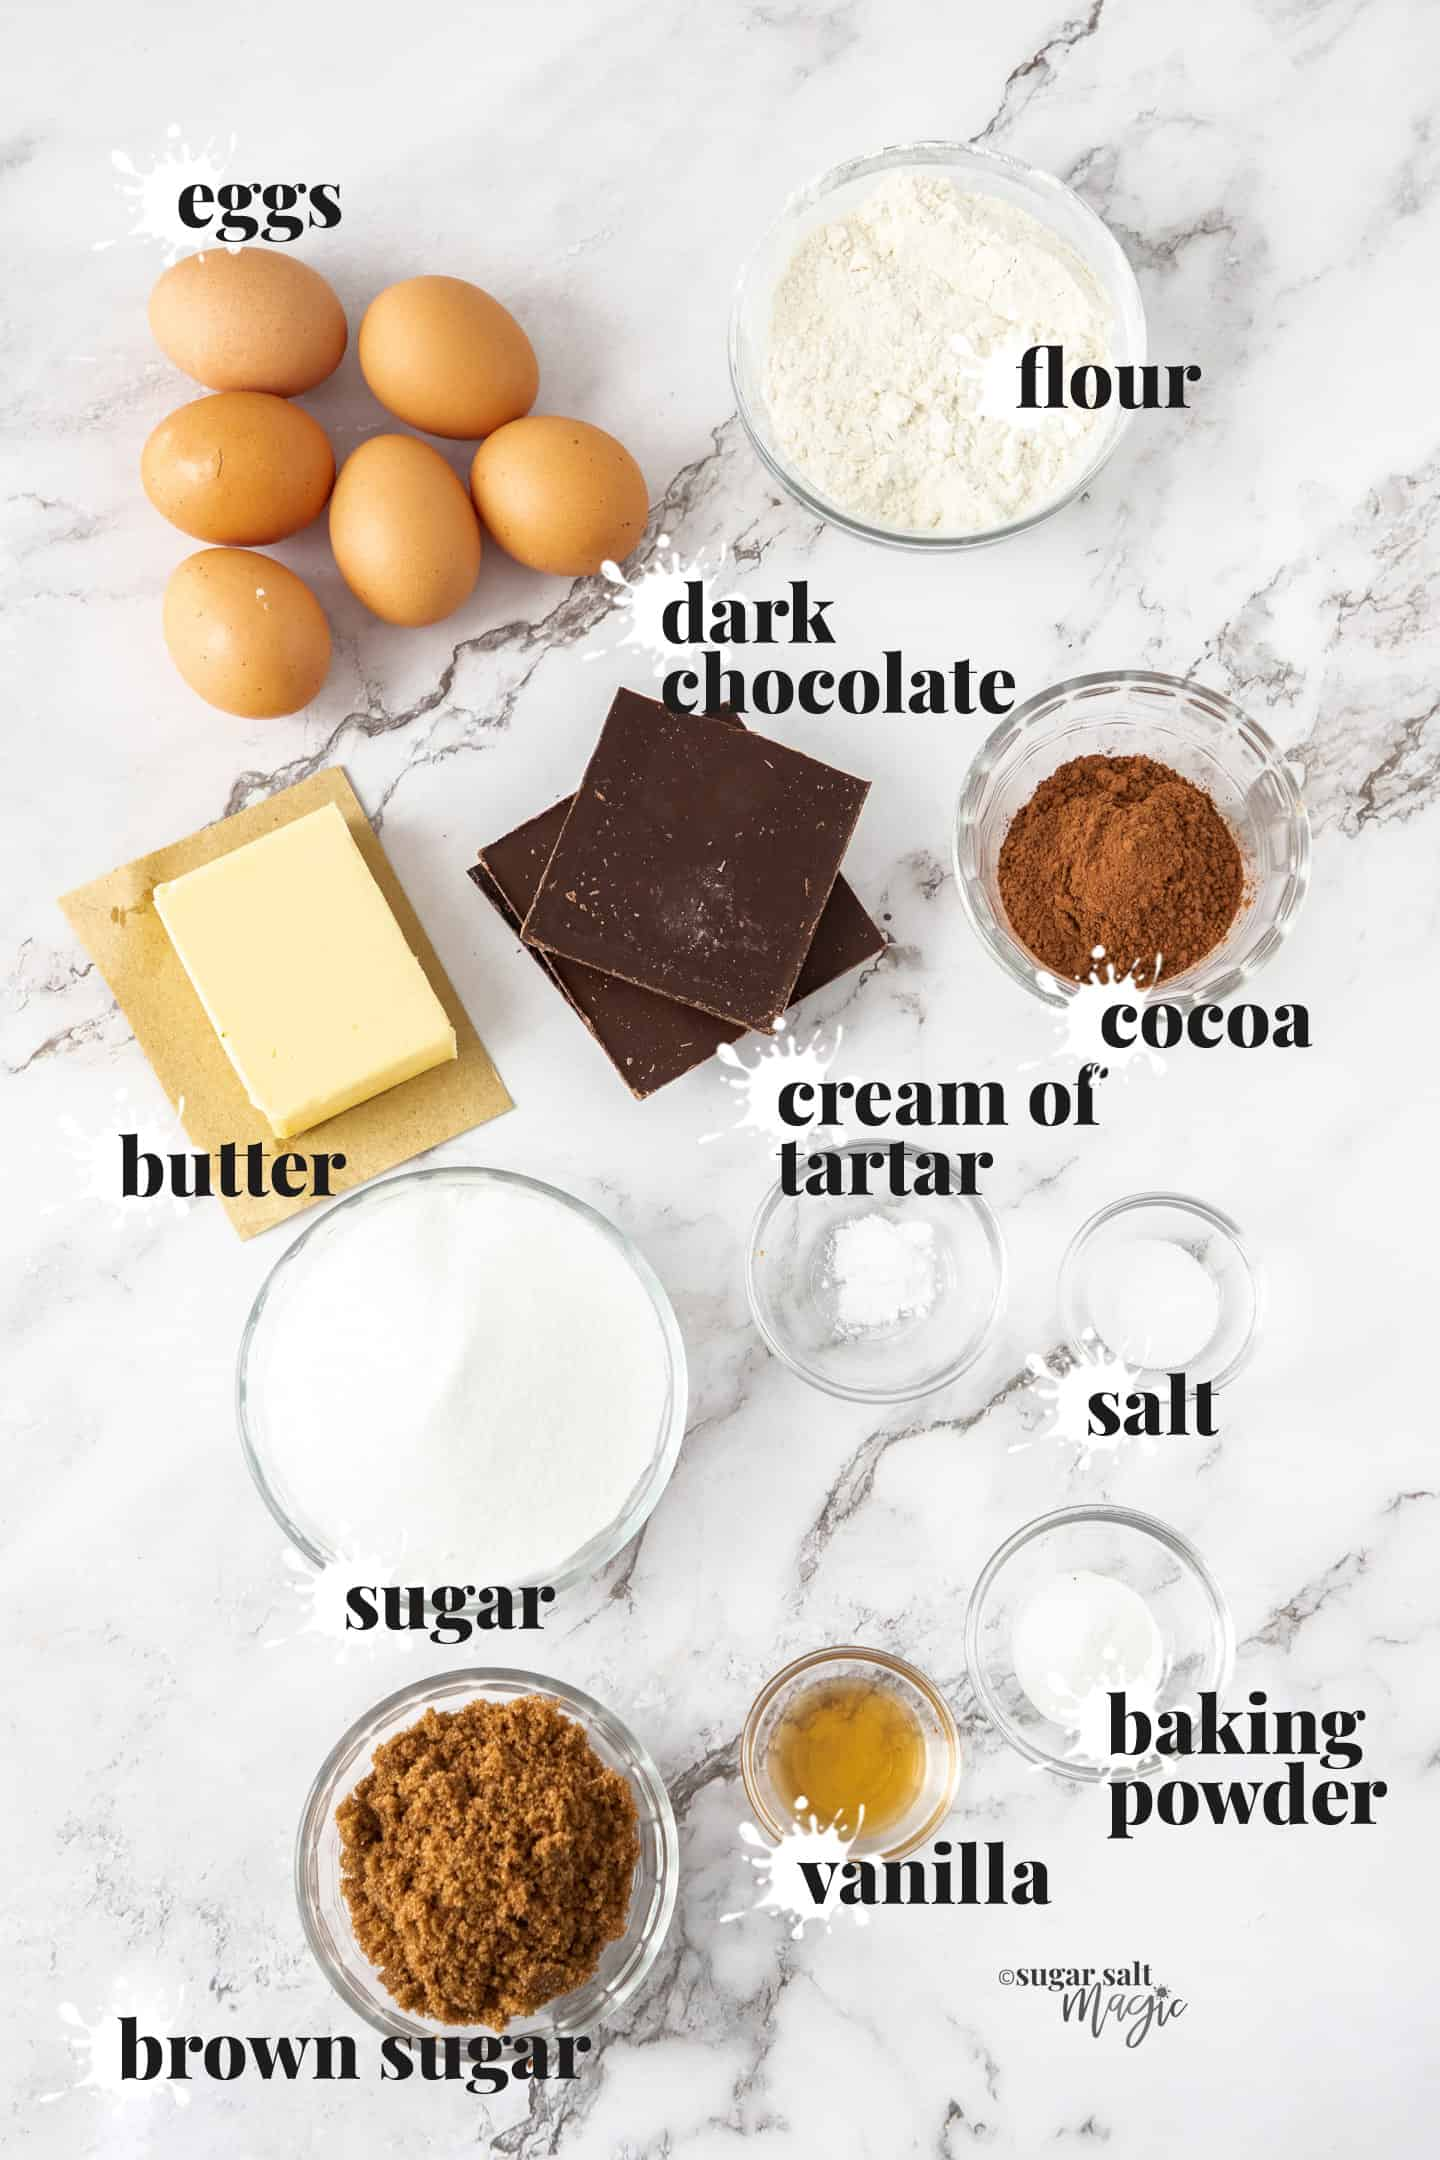 Ingredients for the cake on a marble surface.